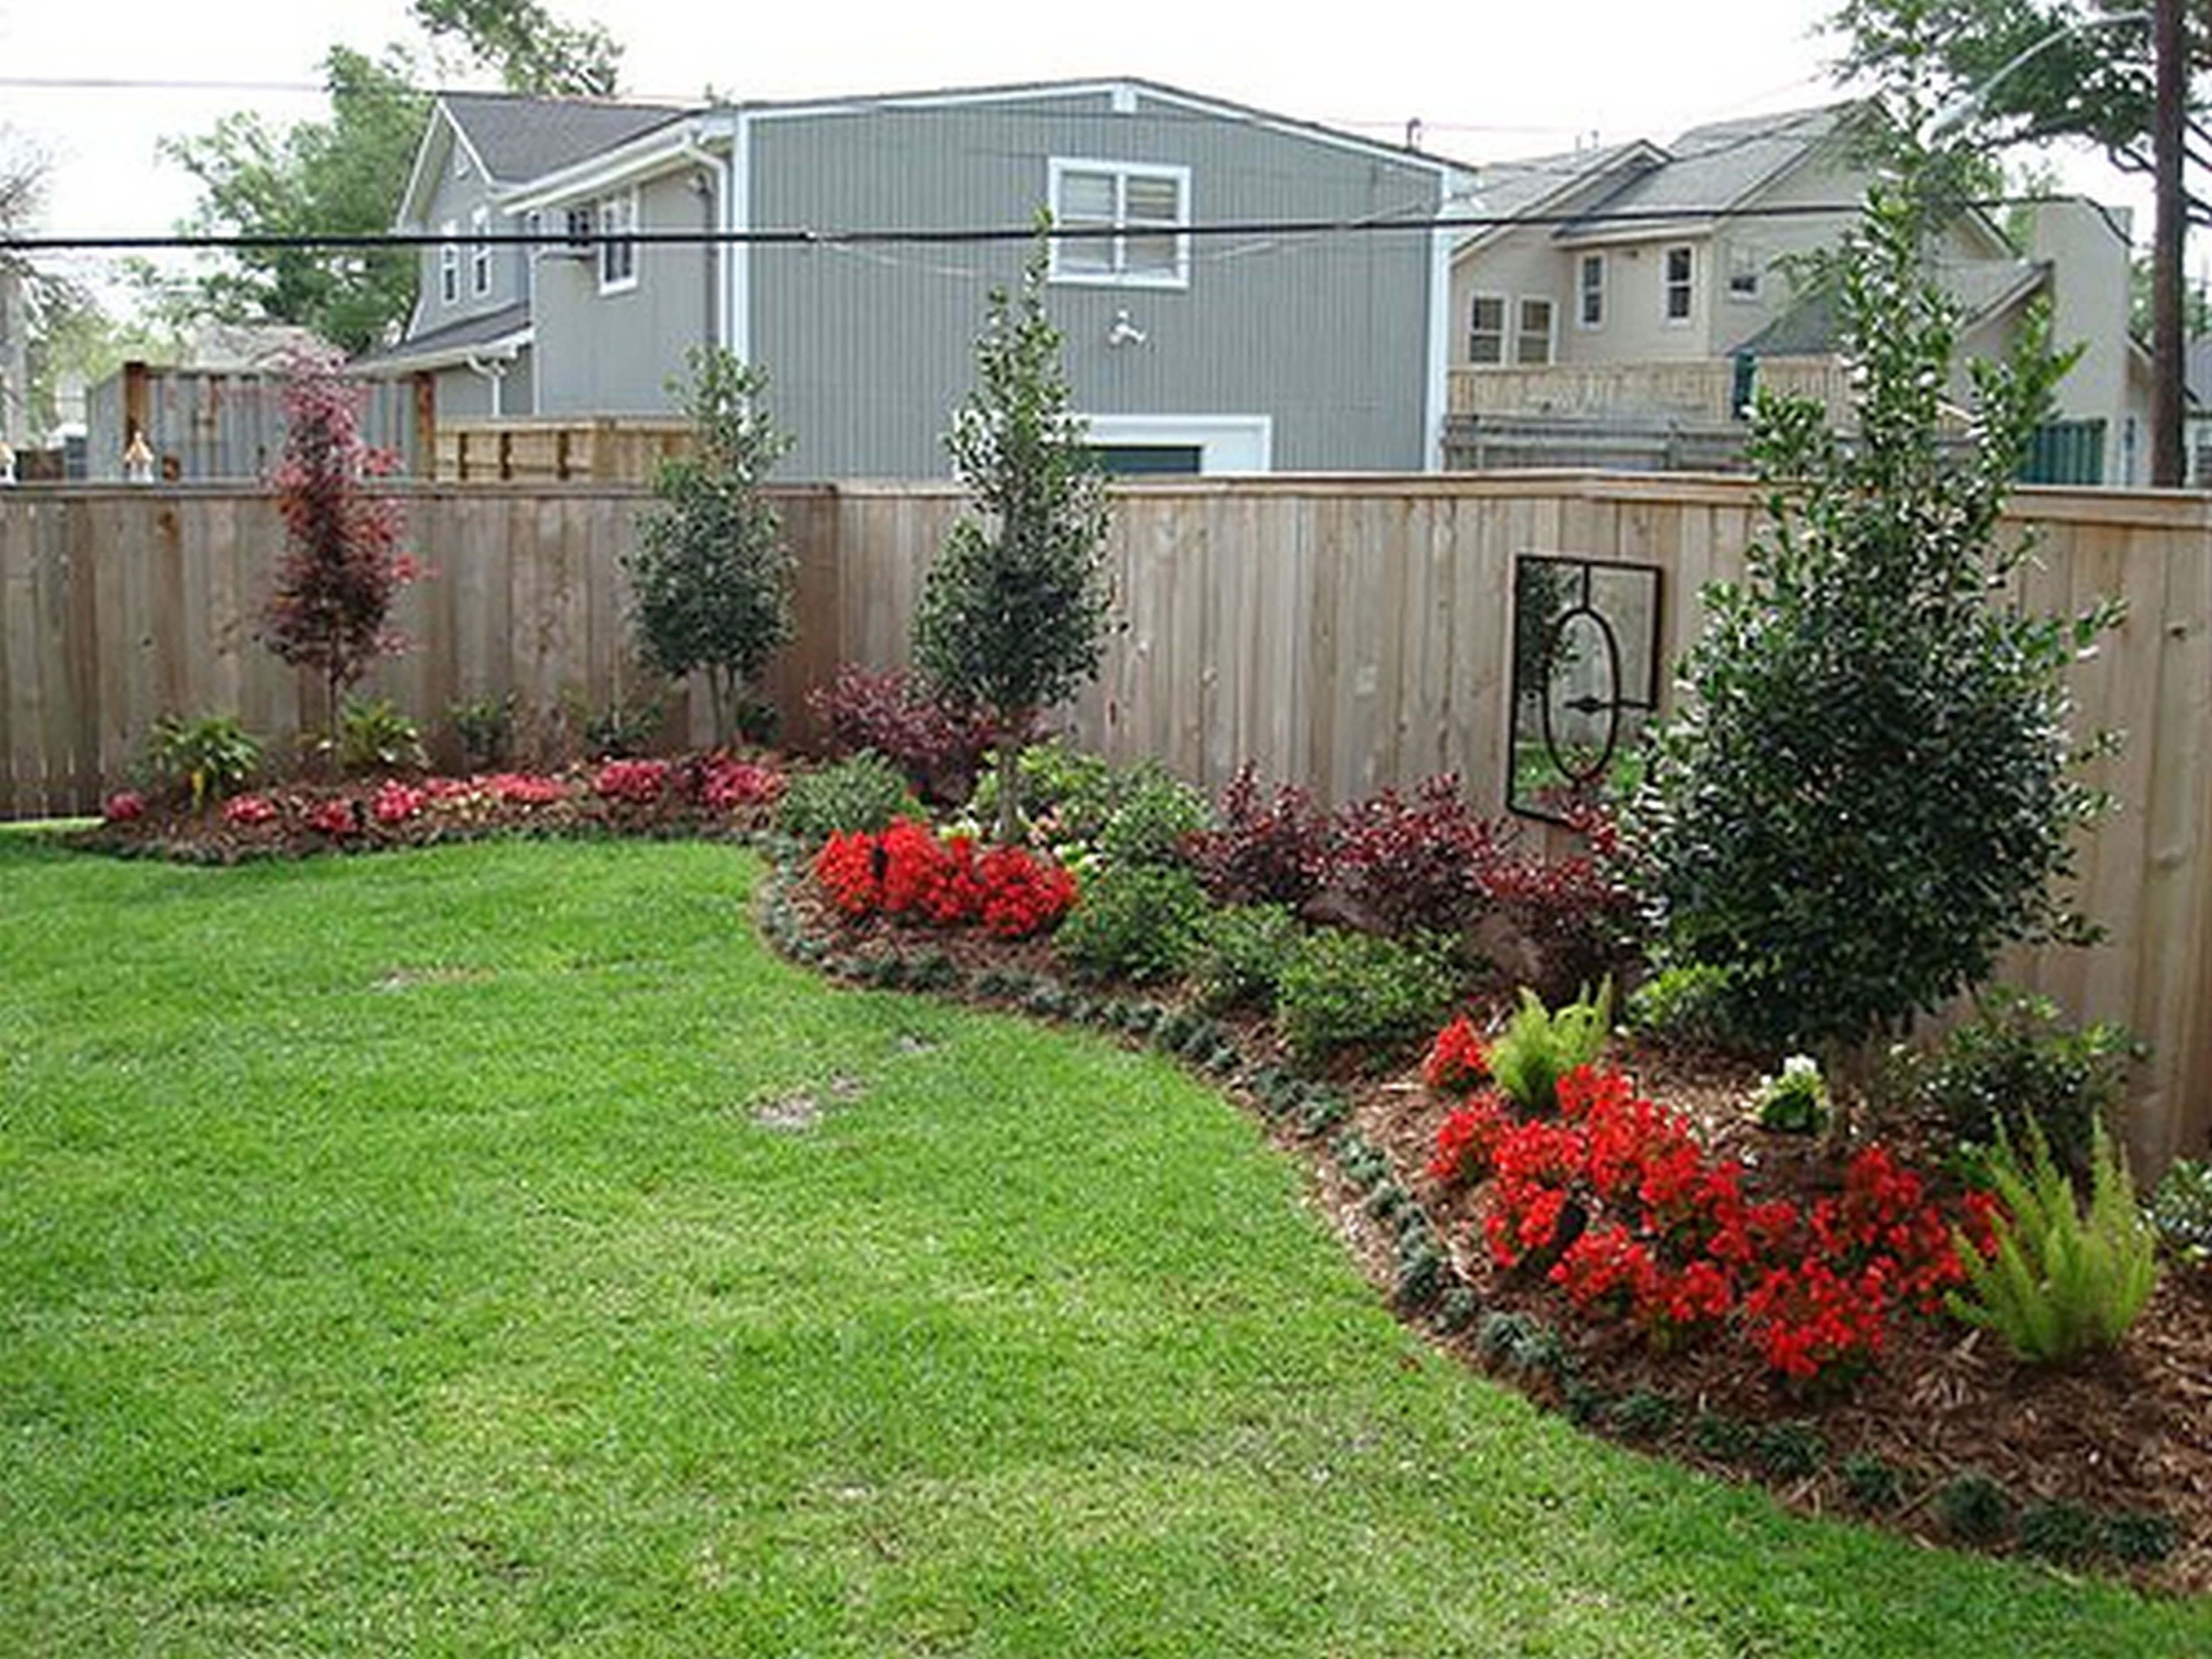 10 Trendy Cheap Landscaping Ideas For Backyard 2020 on Inexpensive Backyard Landscaping id=45389